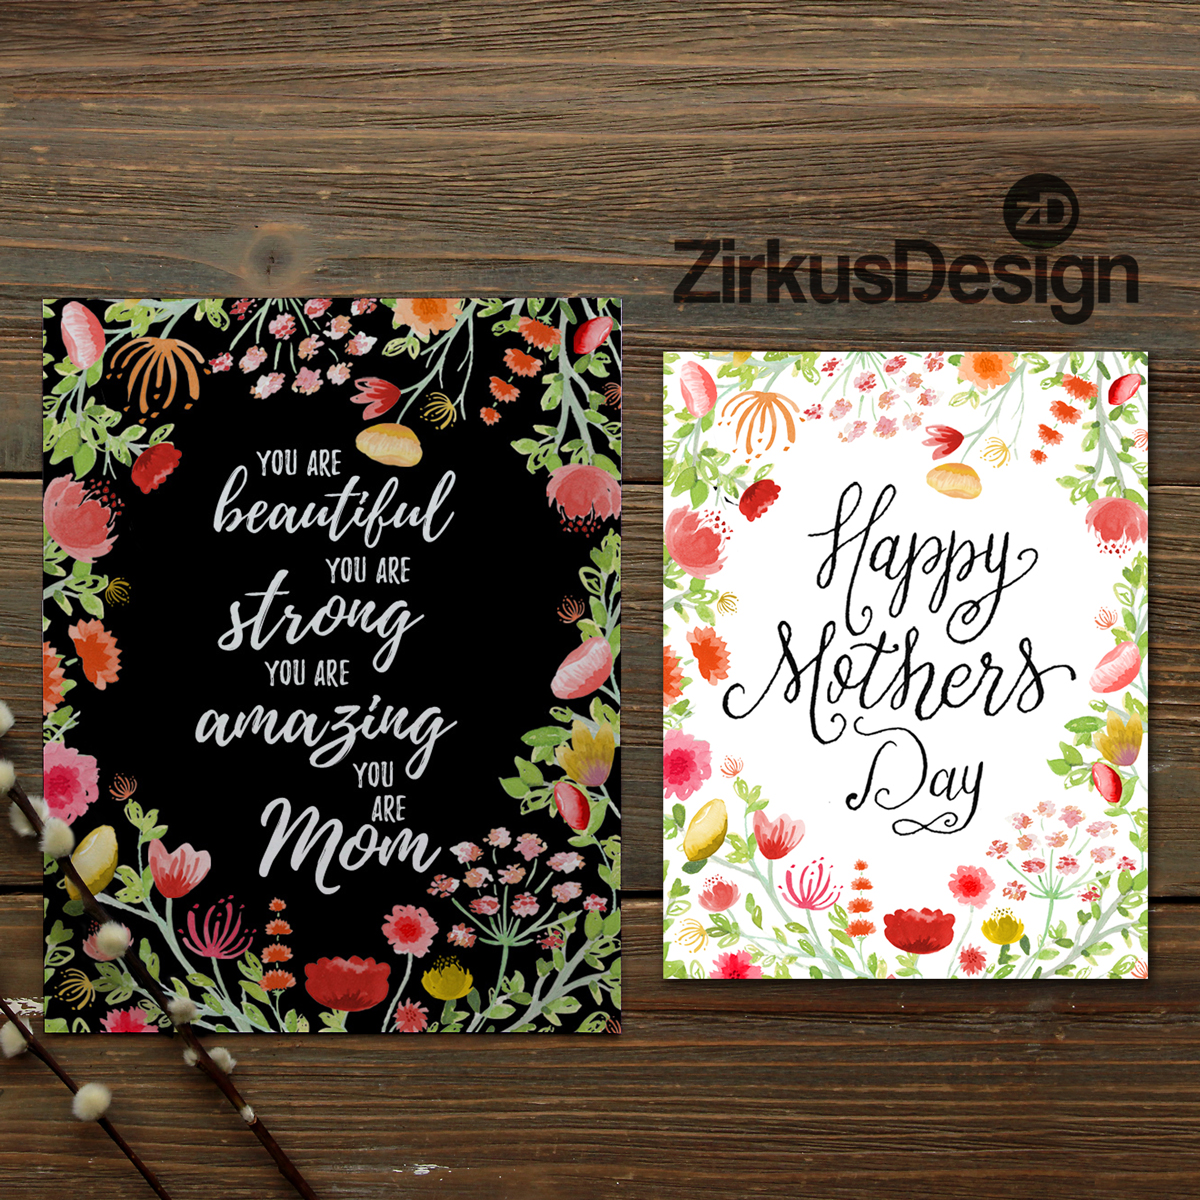 Zirkus Design // Blueprint NYC 2019 Recap + Lessons from a First-Time Attendee // Mother's Day Greeting Cards